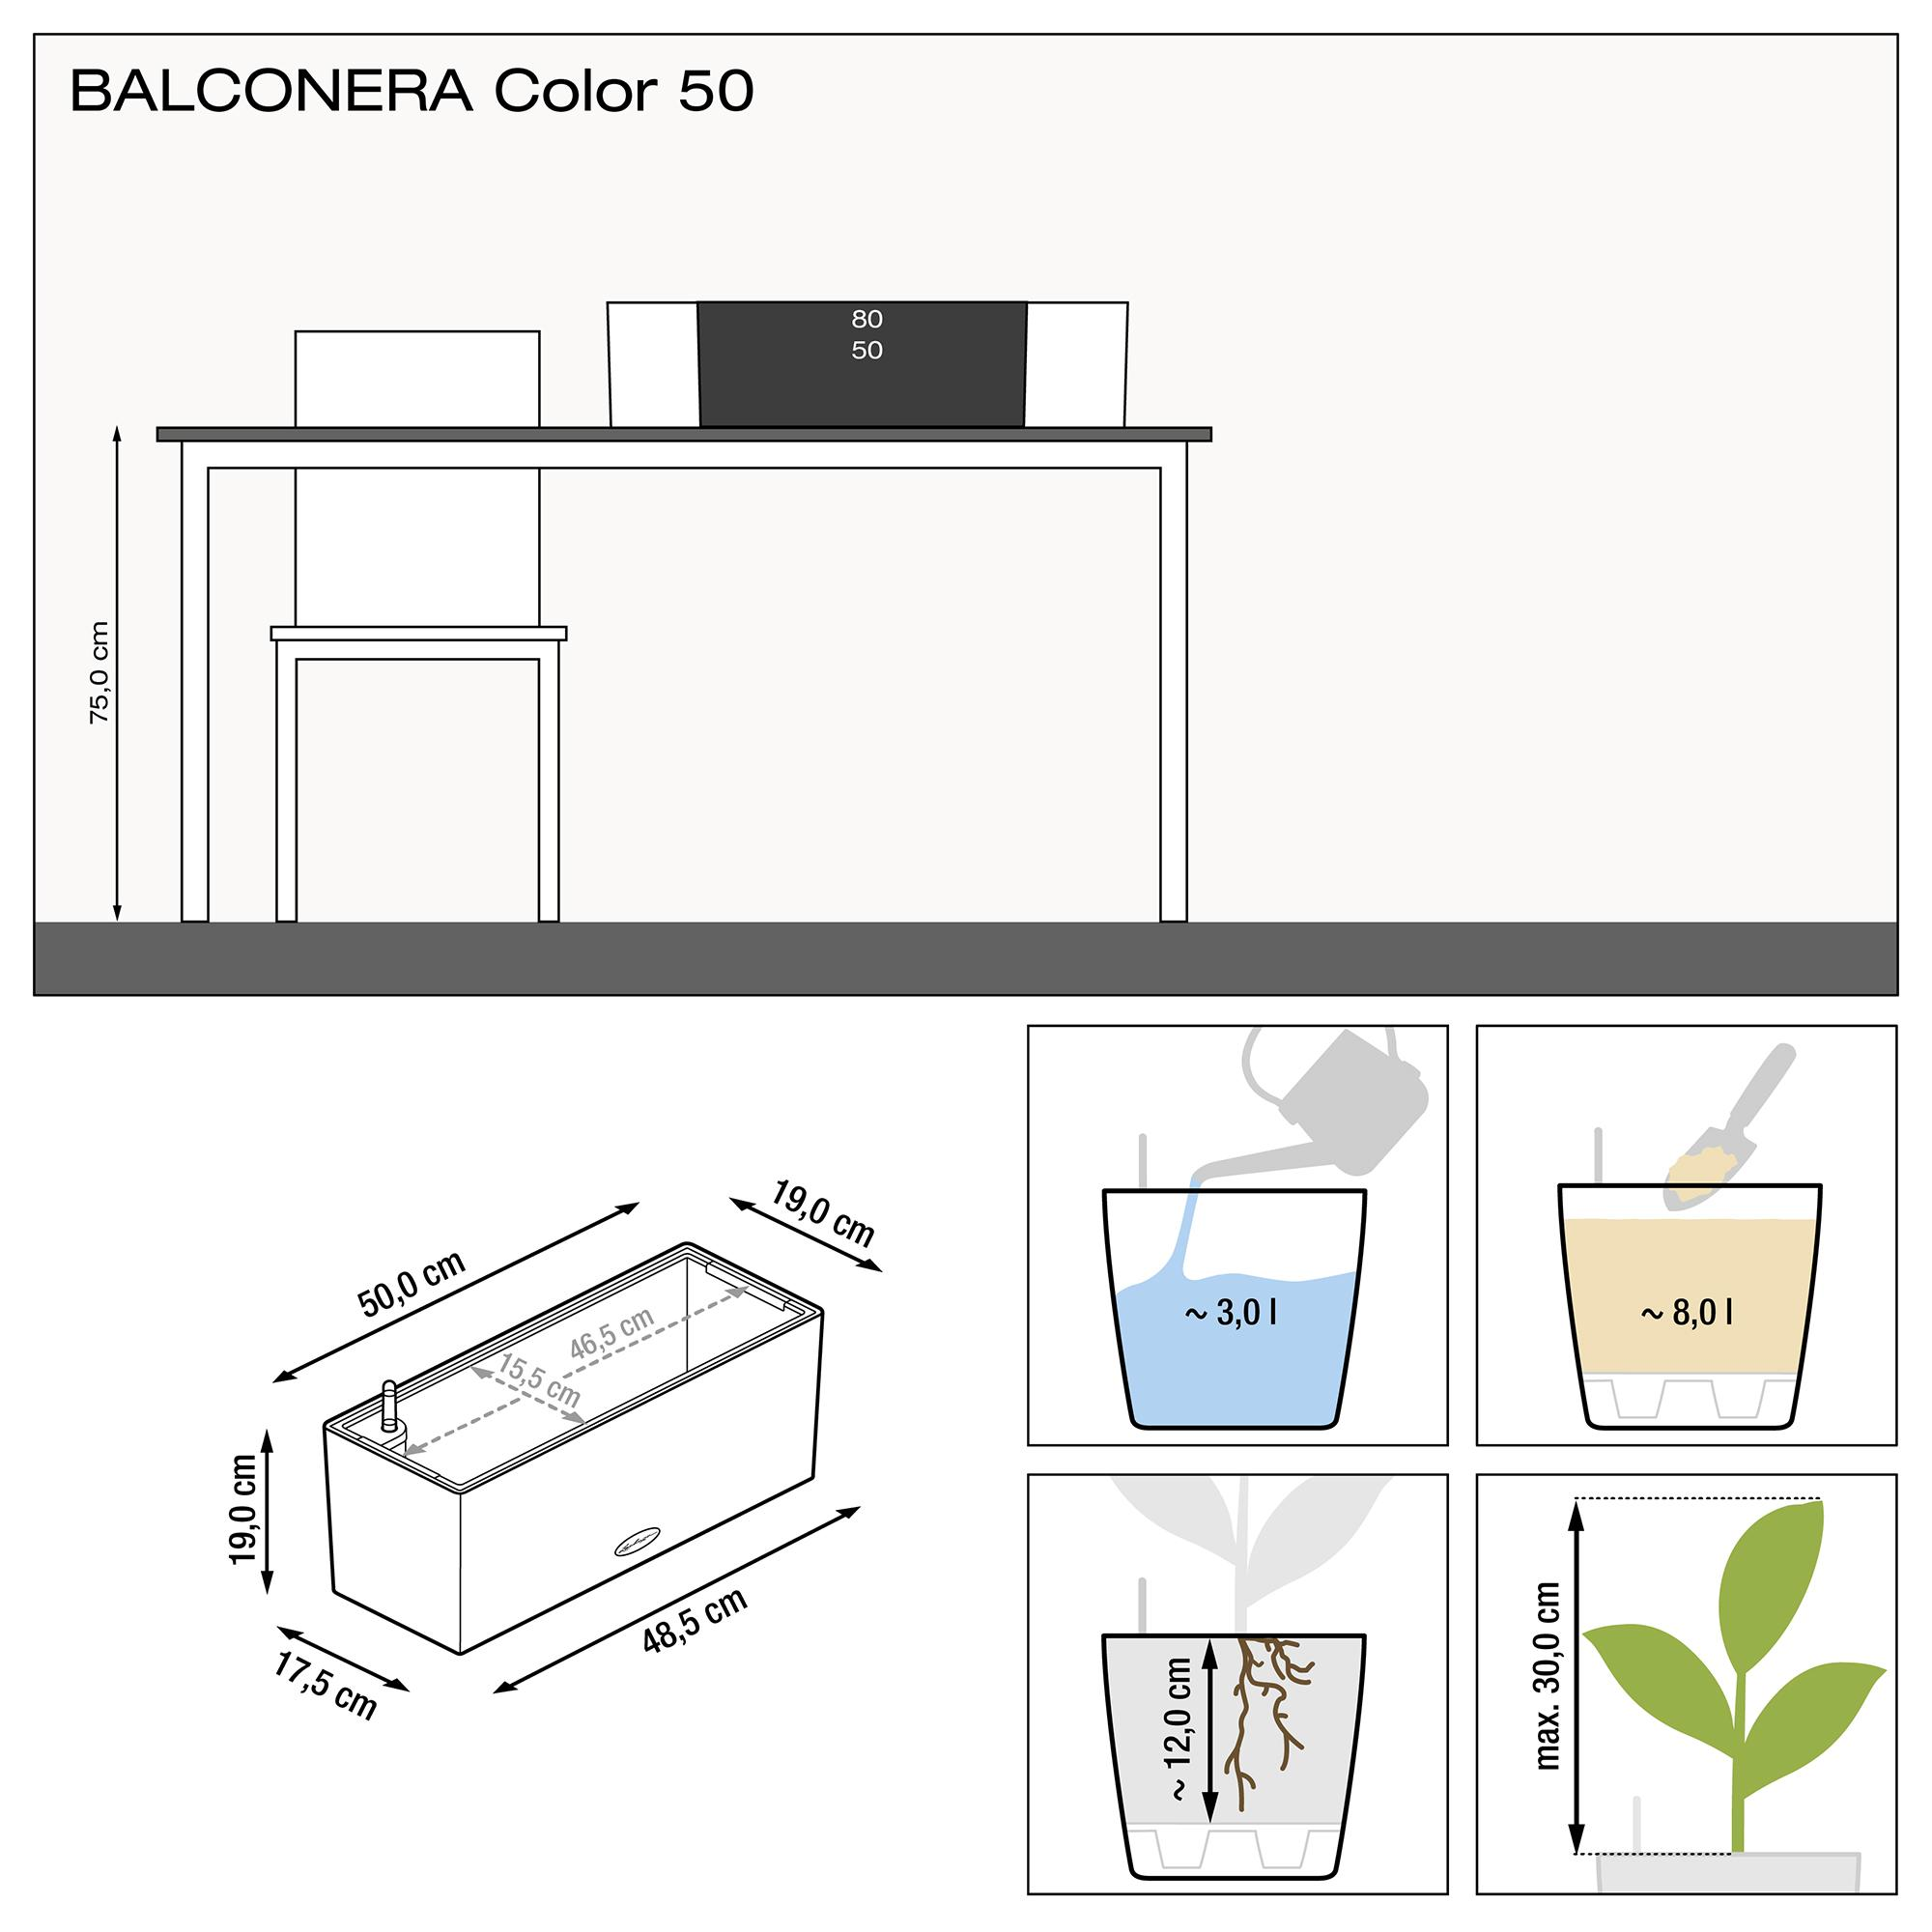 le_balconera-color50_product_addi_nz